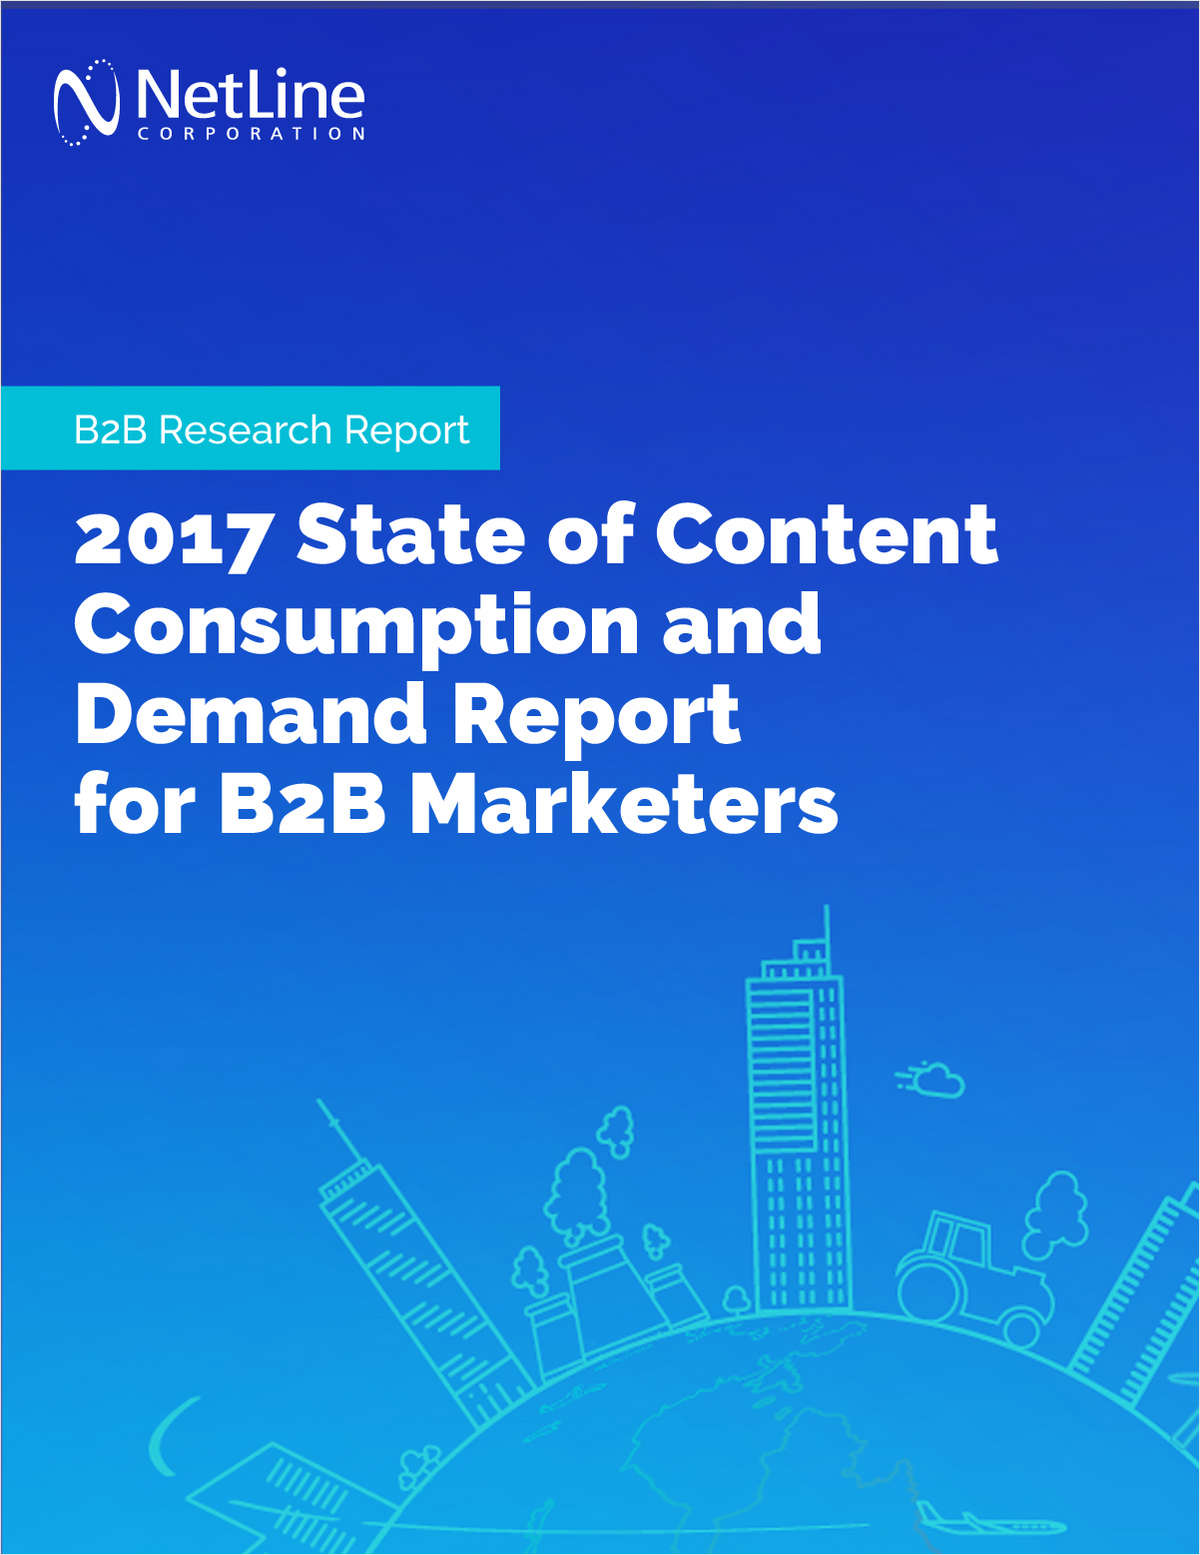 2017 State of Content Consumption and Demand Report for B2B Marketers